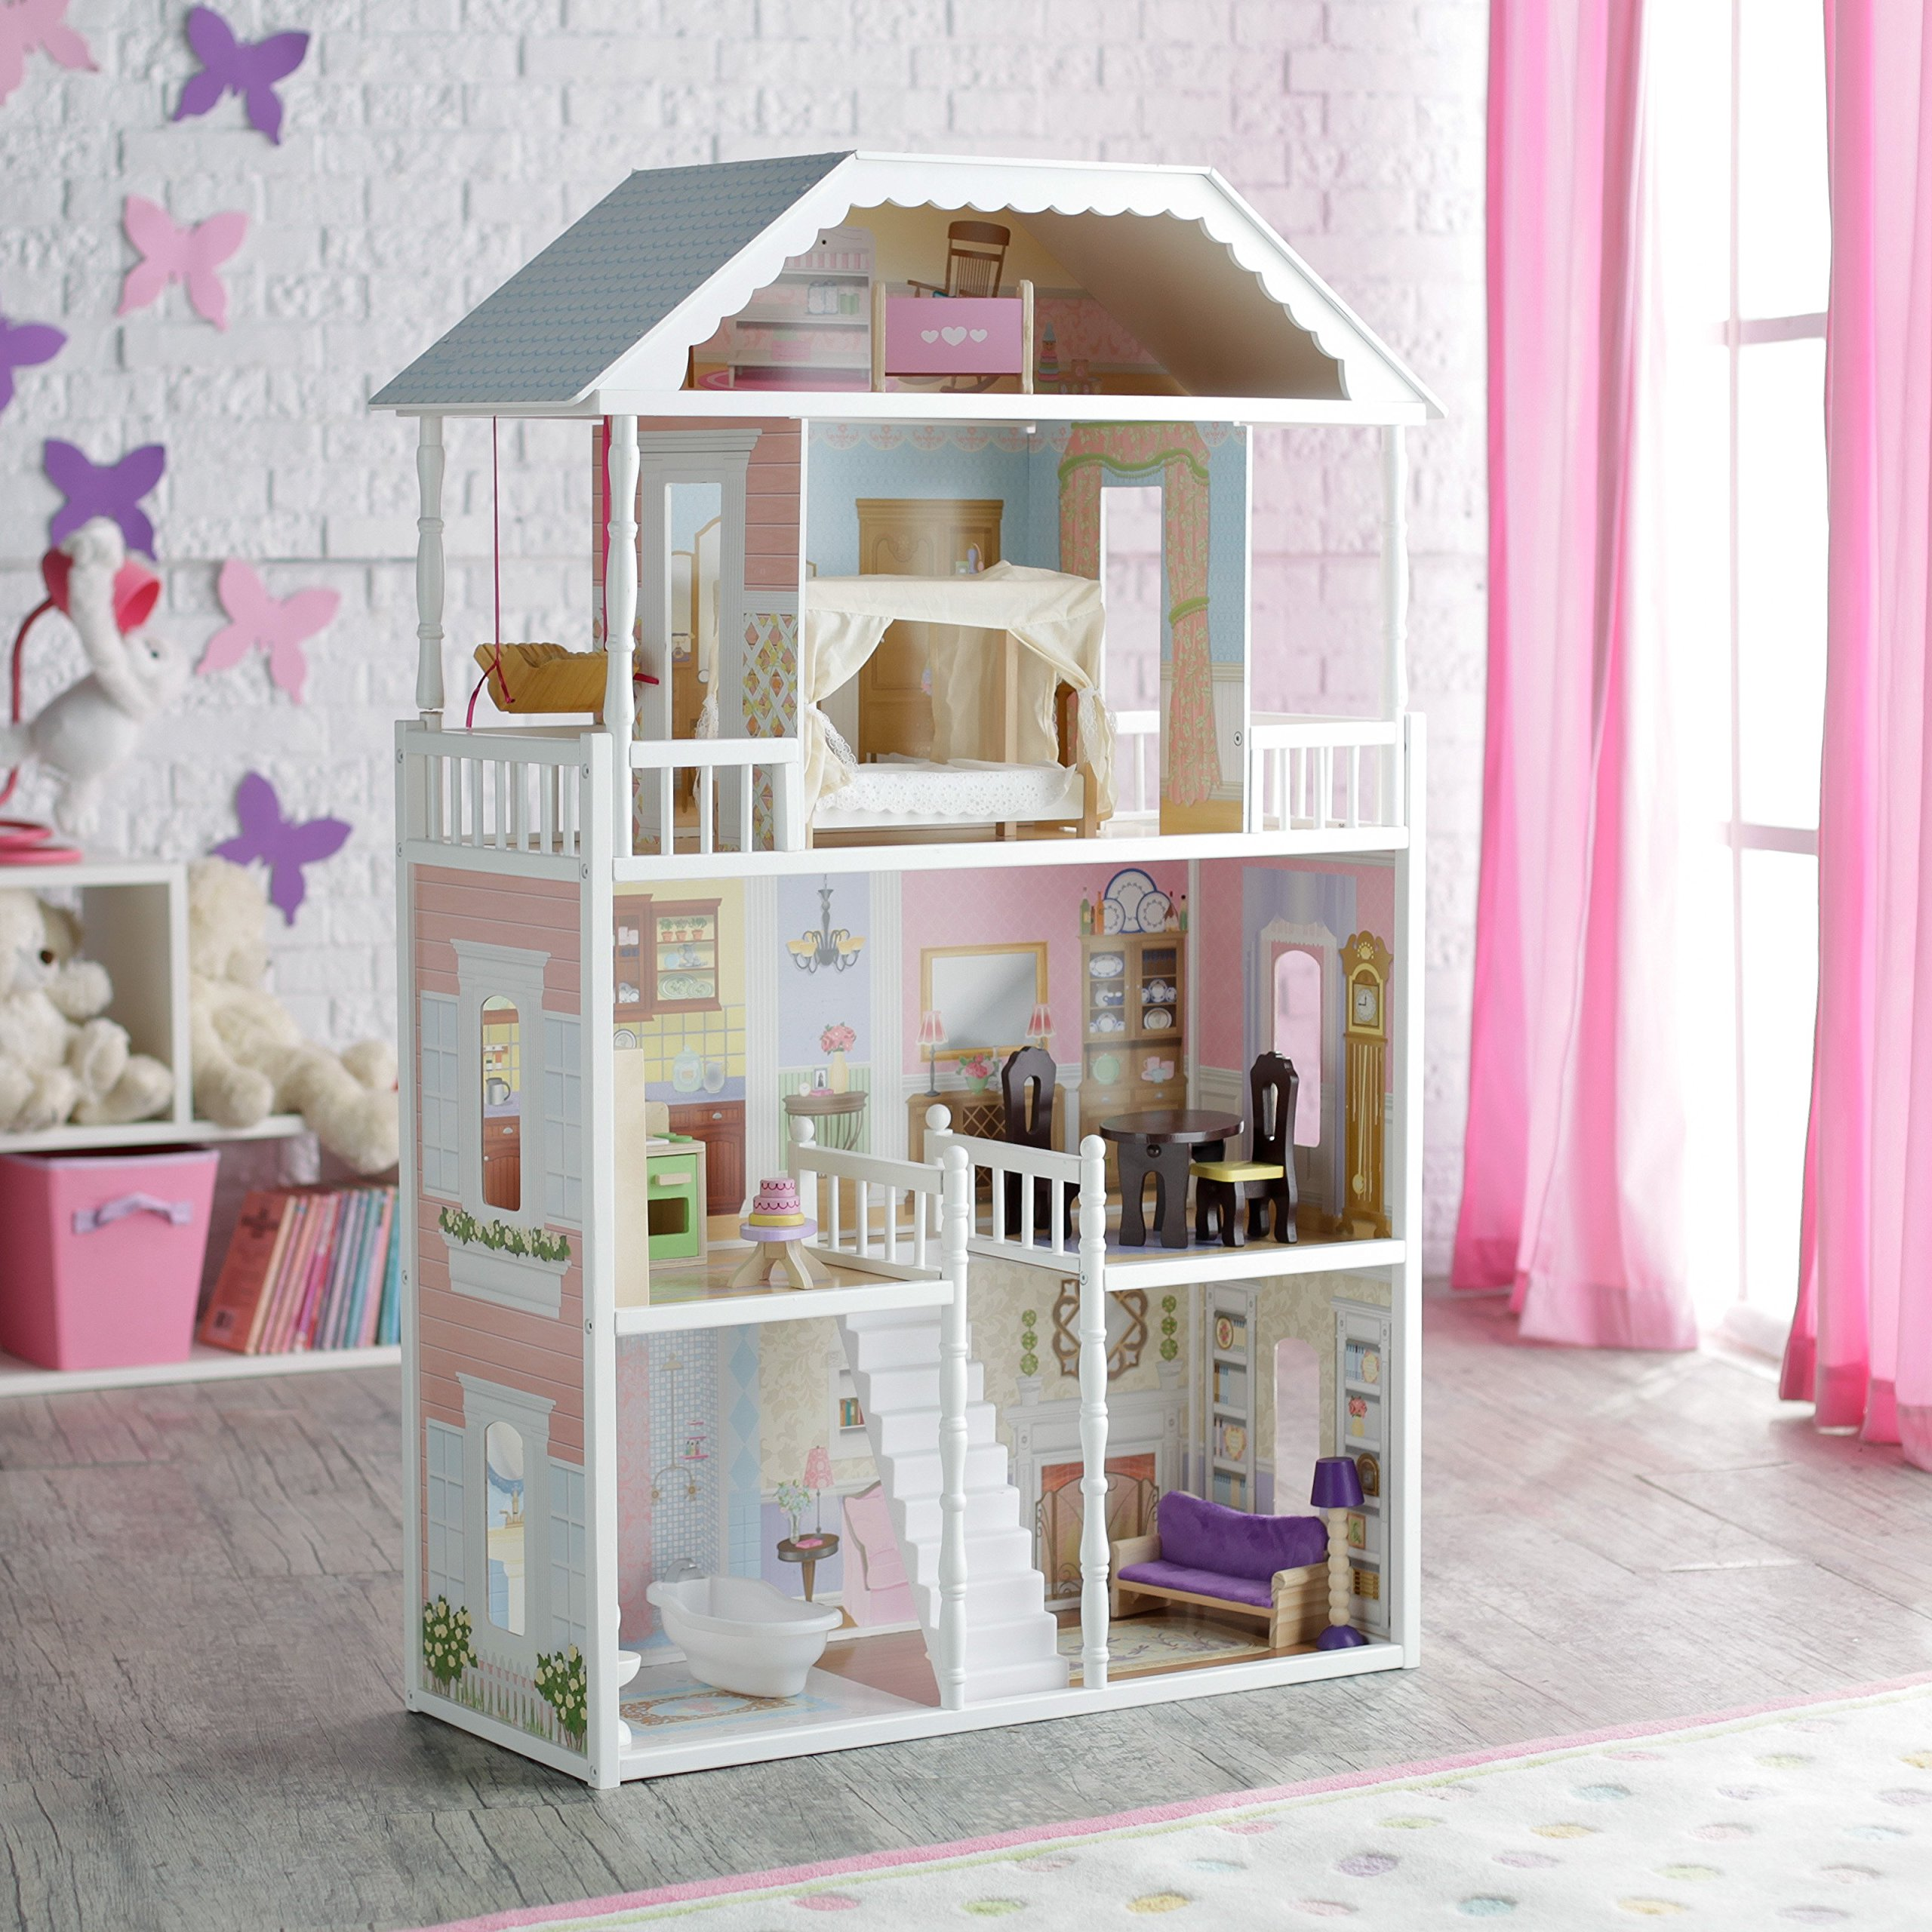 The 10 Best Dollhouse For Toddlers & Little Girls in 2020 5